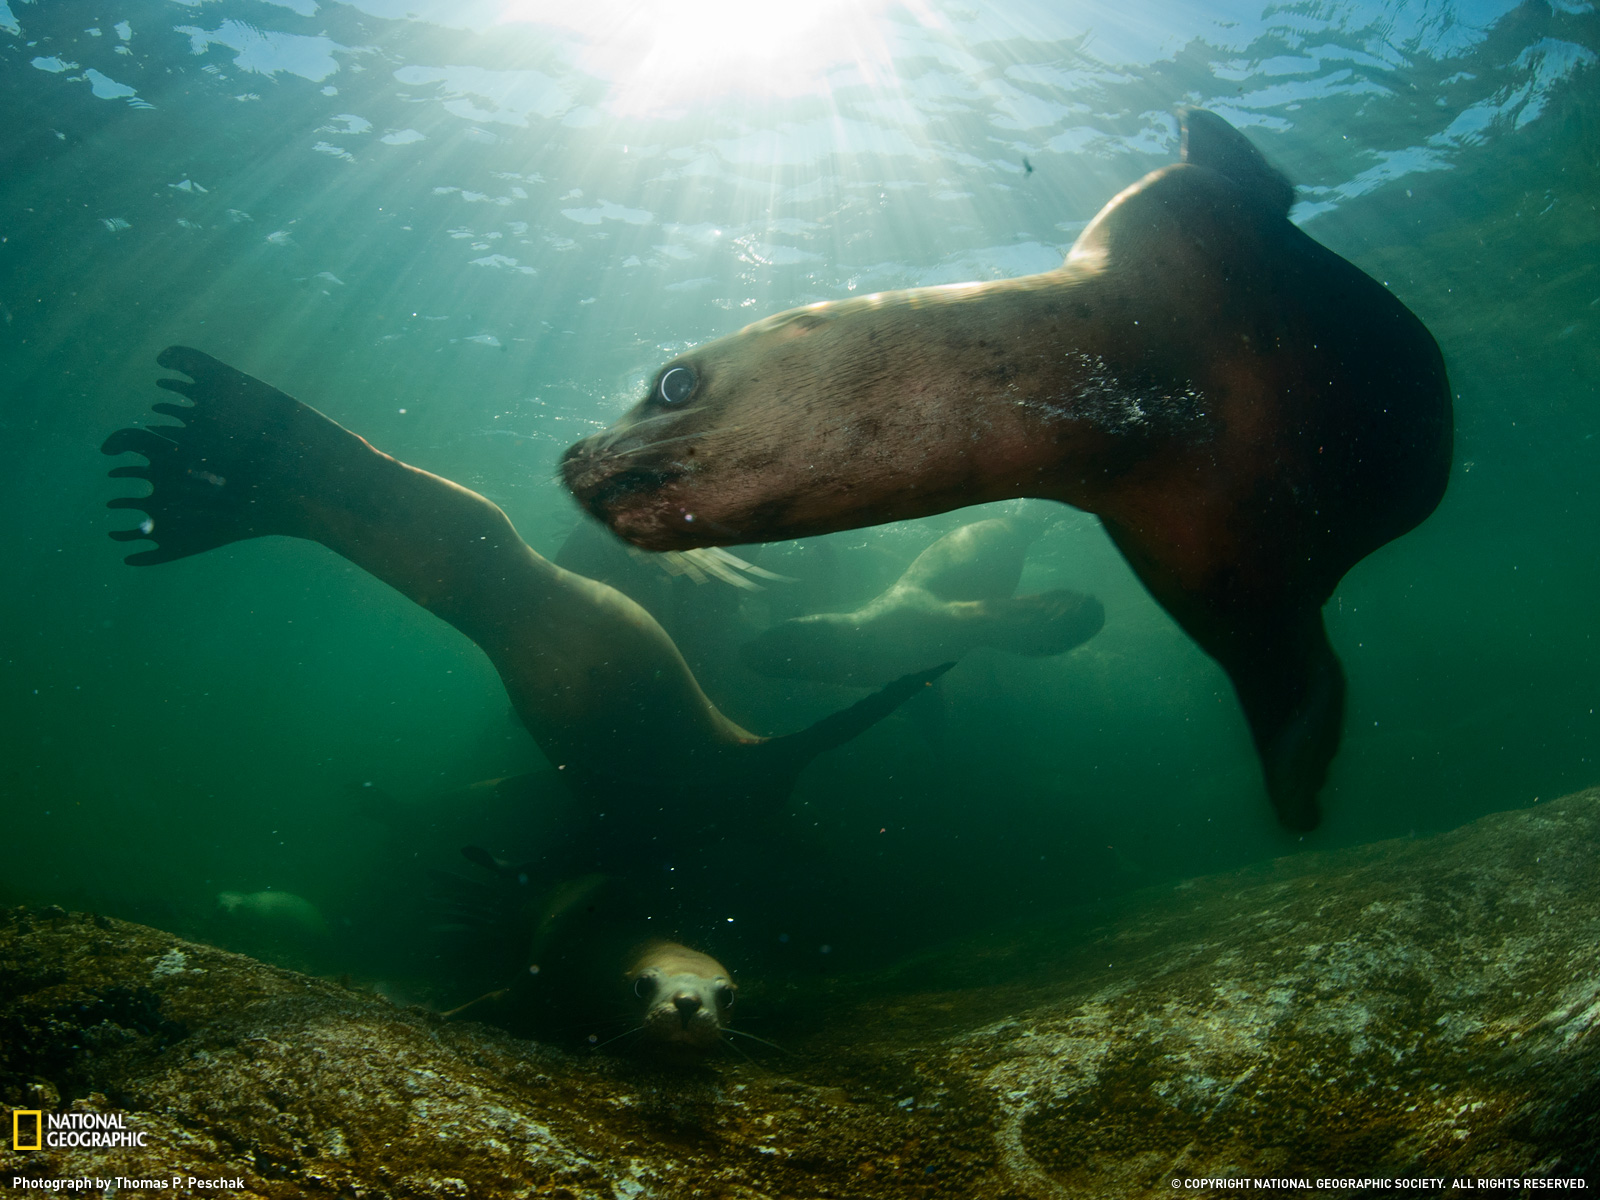 Photo Of The Day: National Geographic Photo Of The Day (August 2011